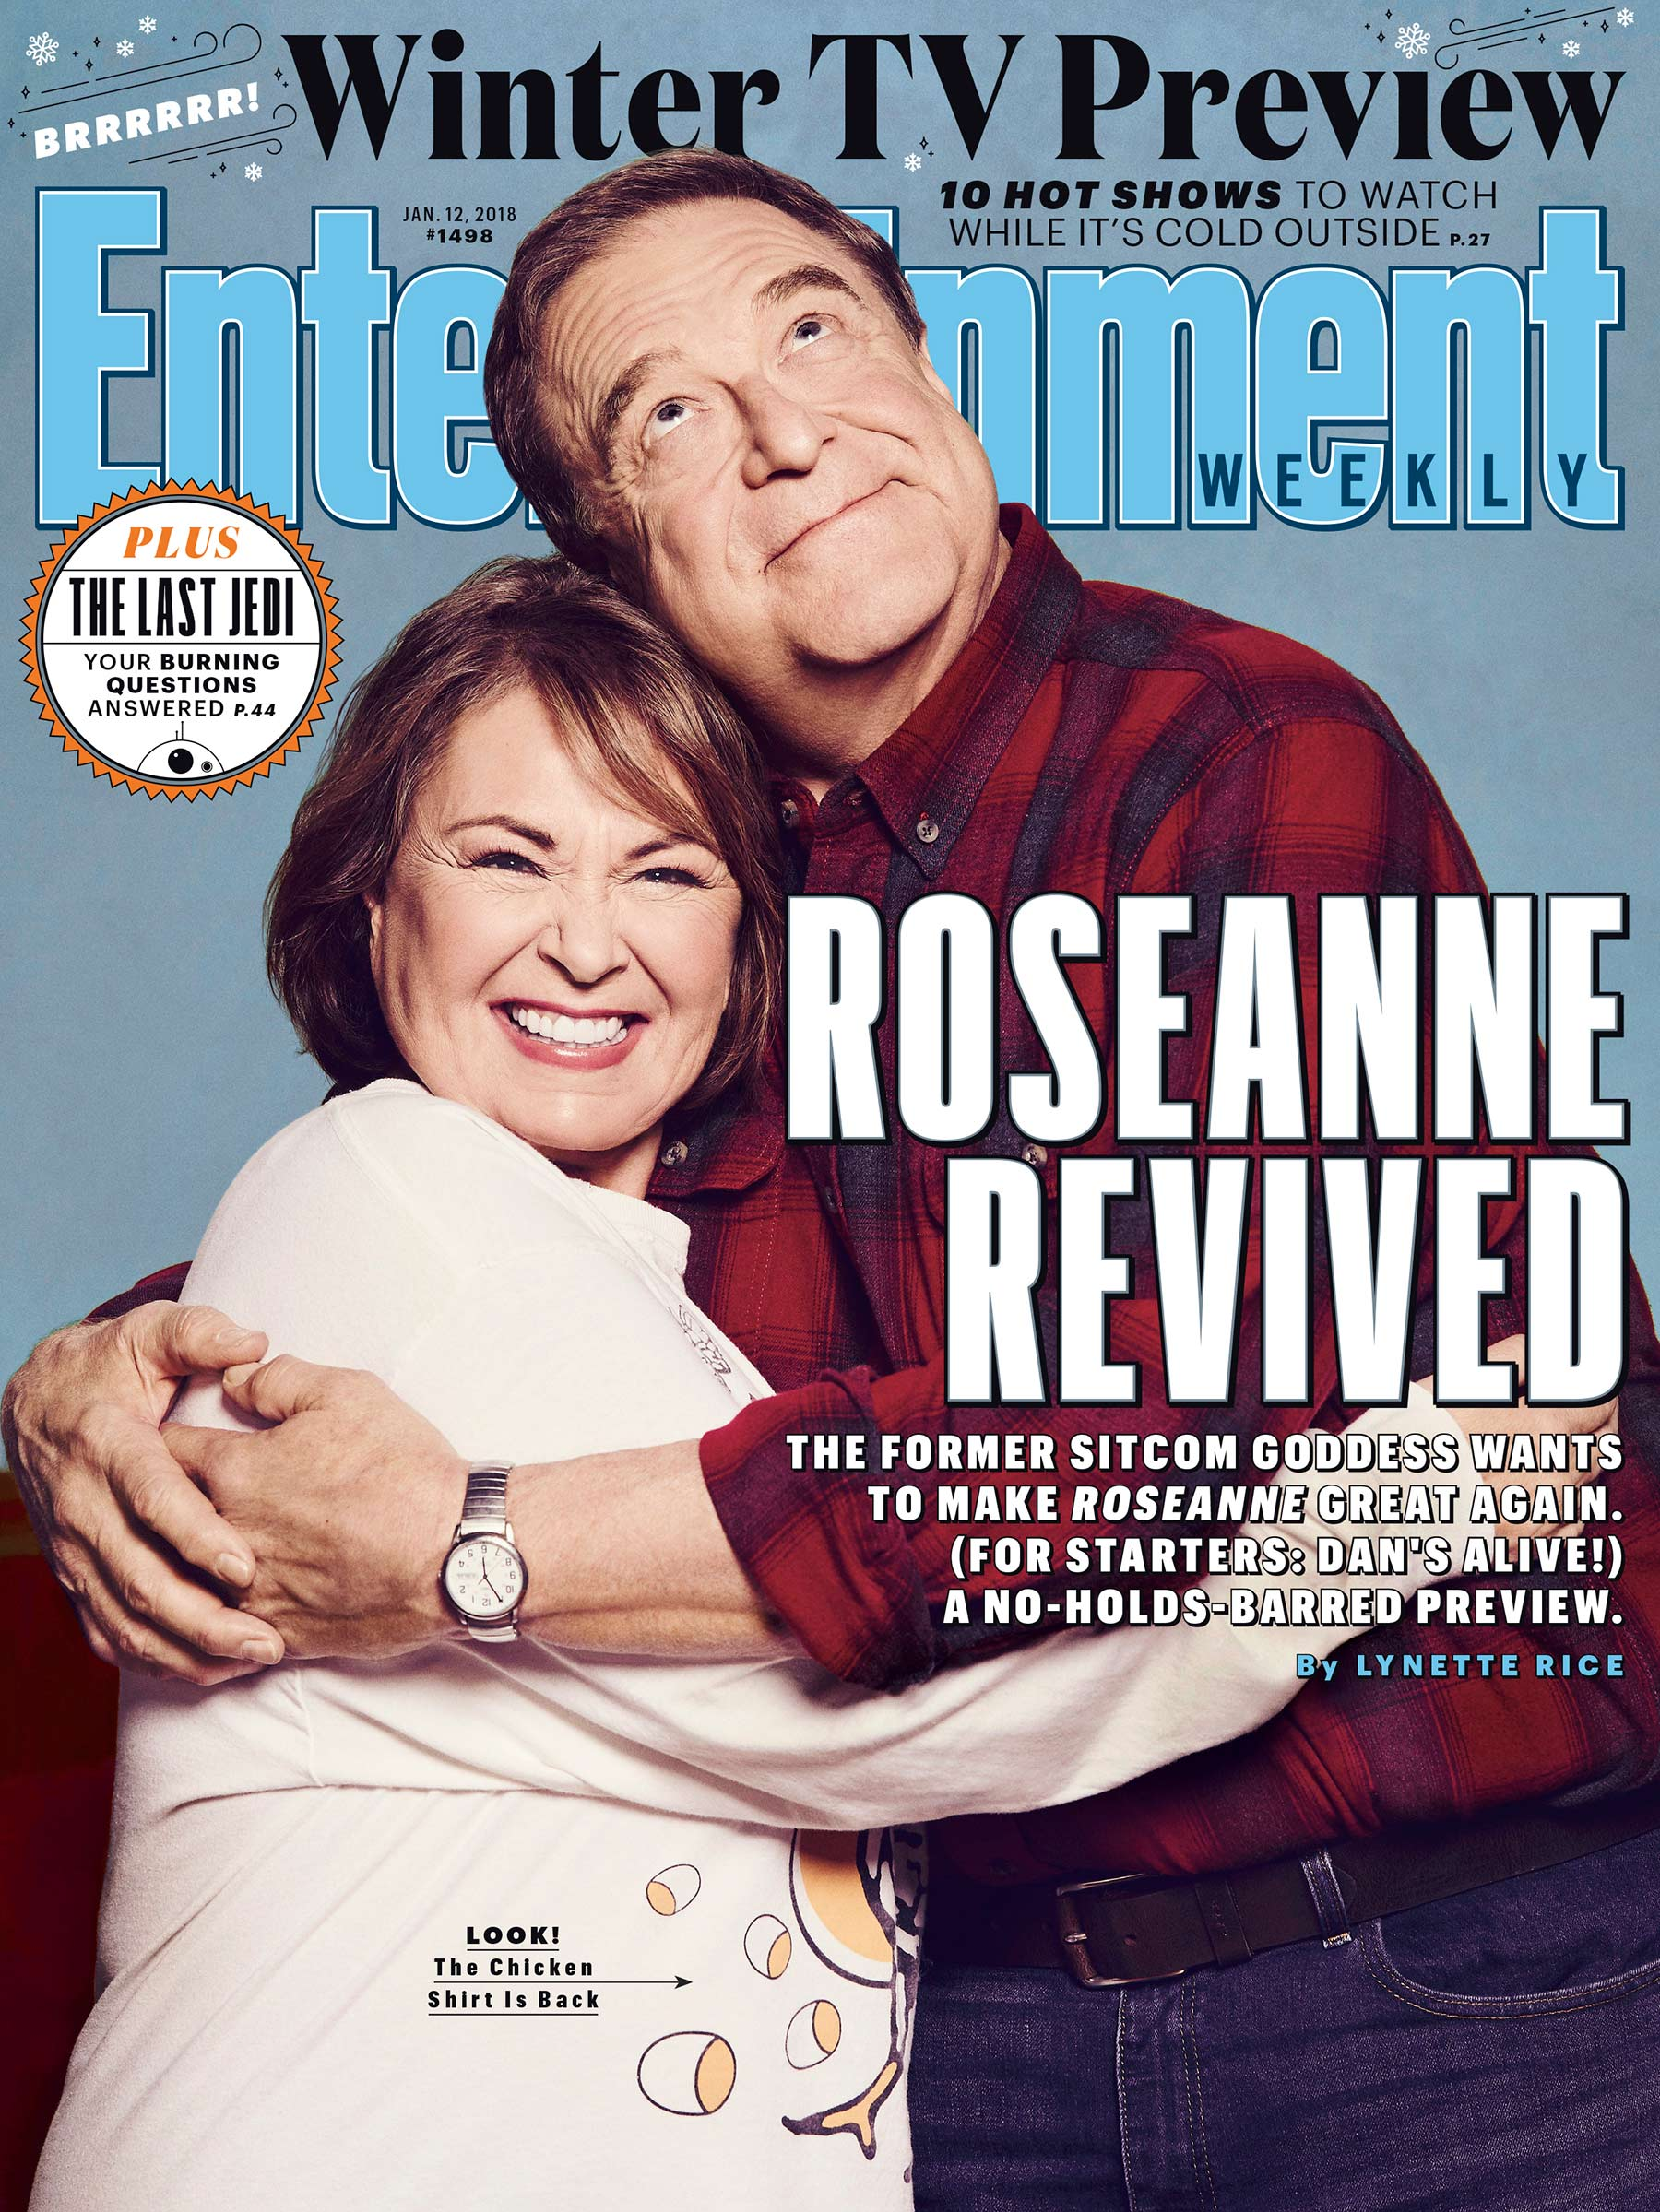 Roseanne Revived - Entertainment Weekly Cover - January 2018